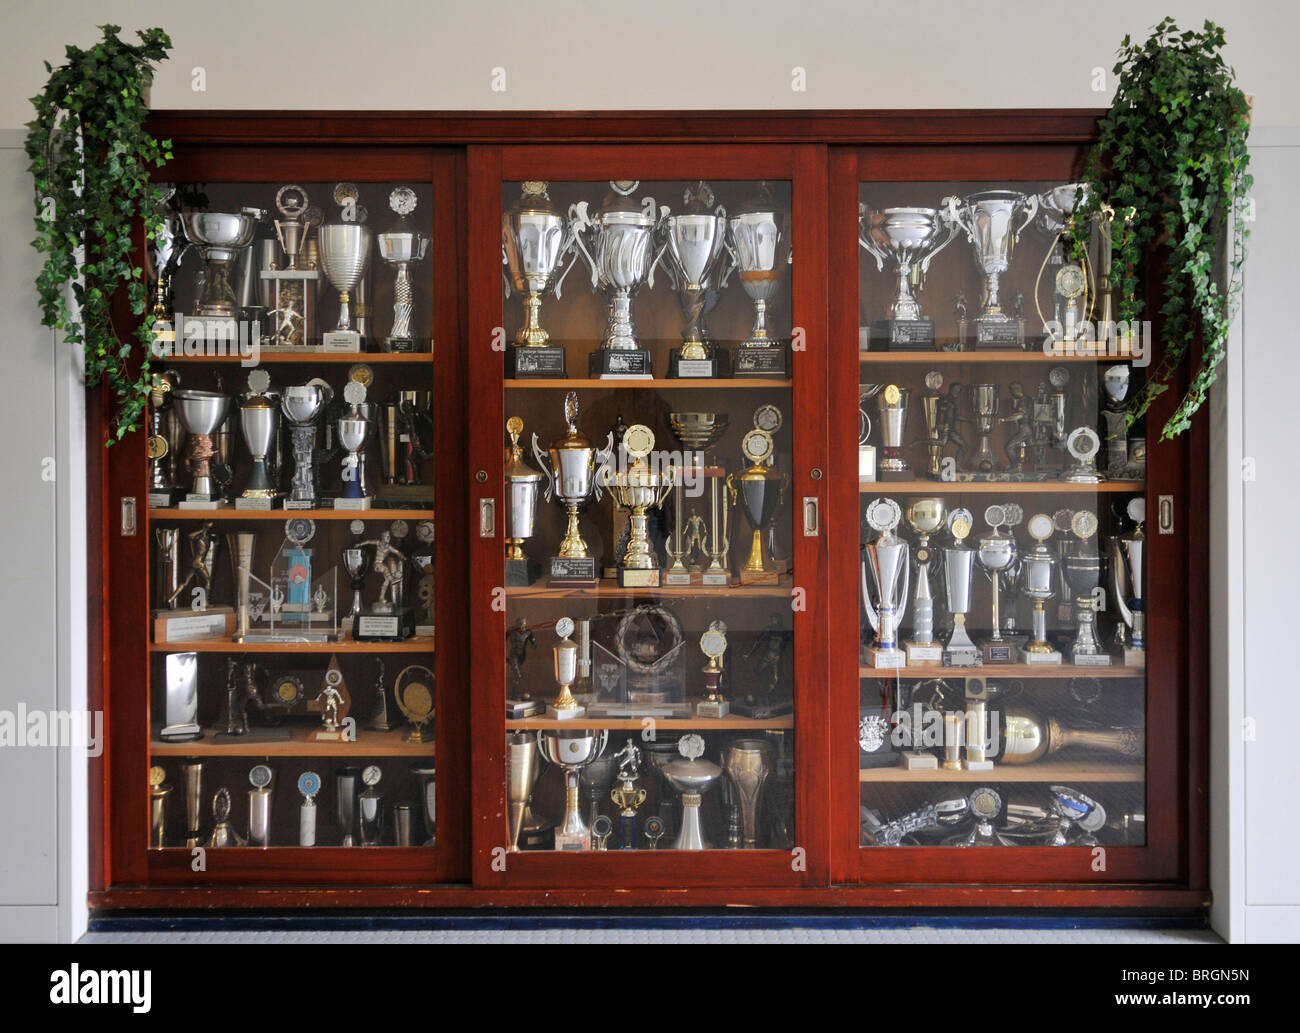 Trophy Cabinet Stock Photos & Trophy Cabinet Stock Images - Alamy